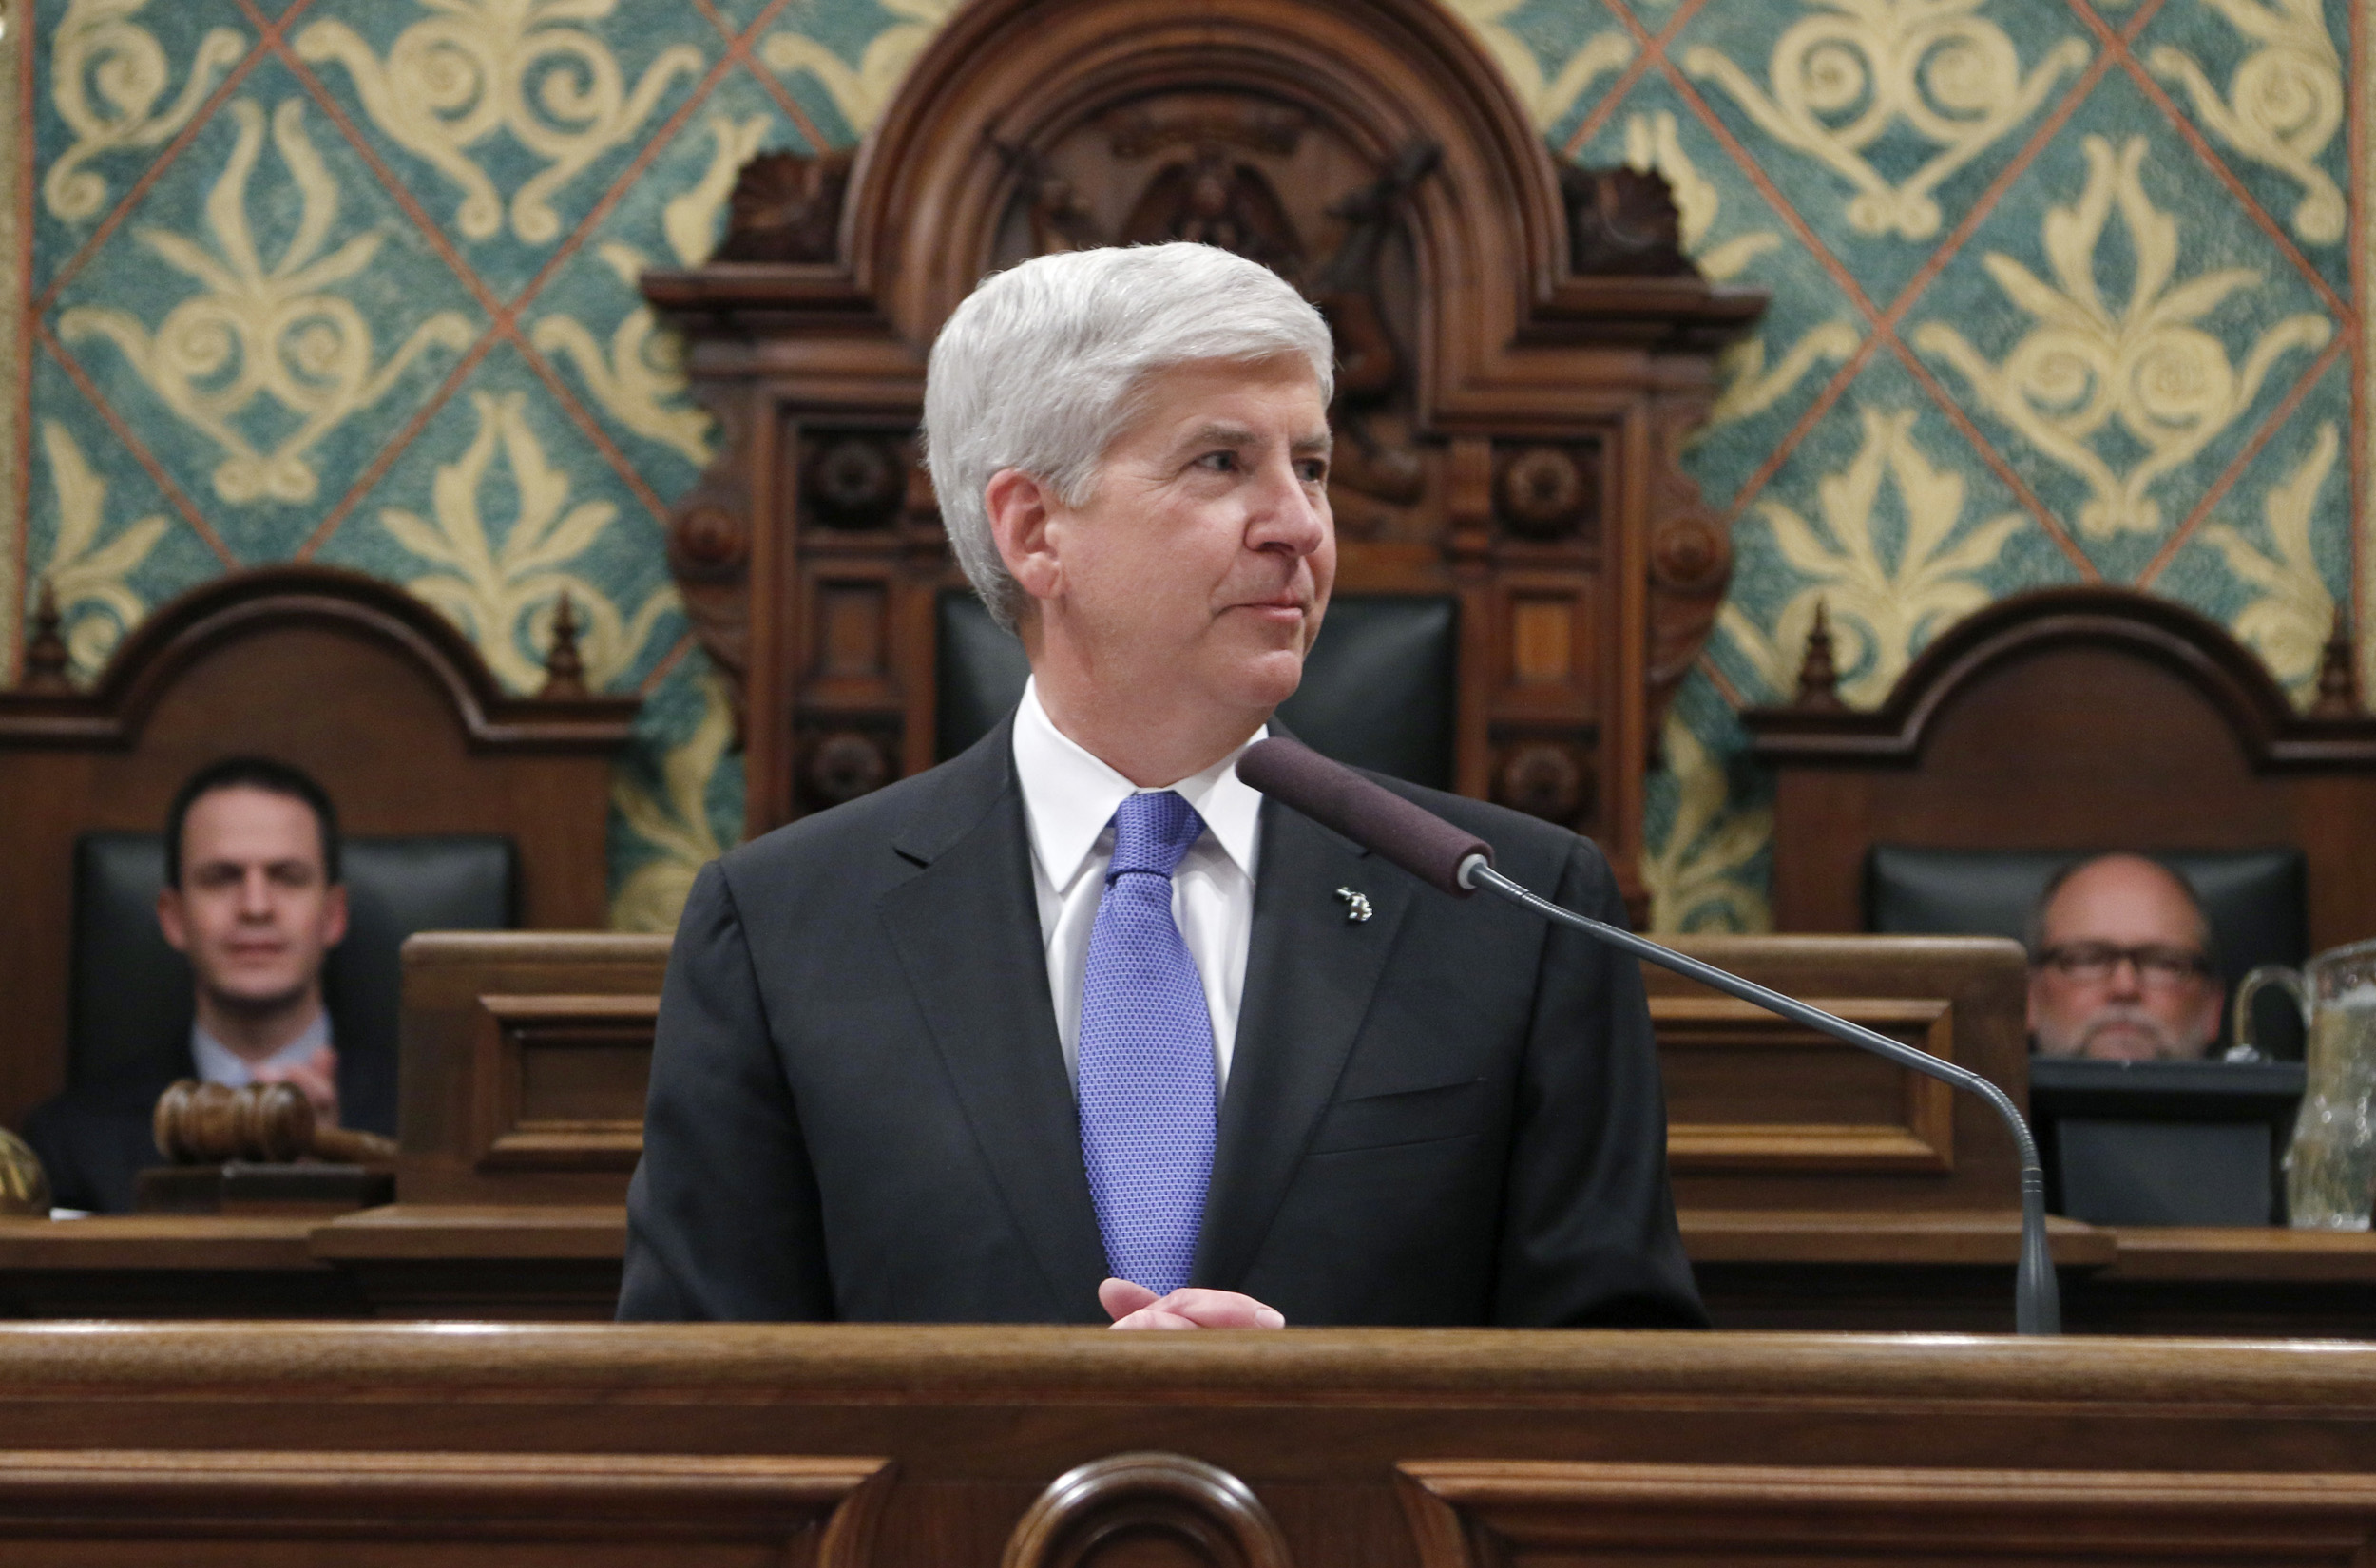 Michigan Gov. Rick Snyder delivers his State of the State address in Lansig, Mich. on Jan. 20, 2015.